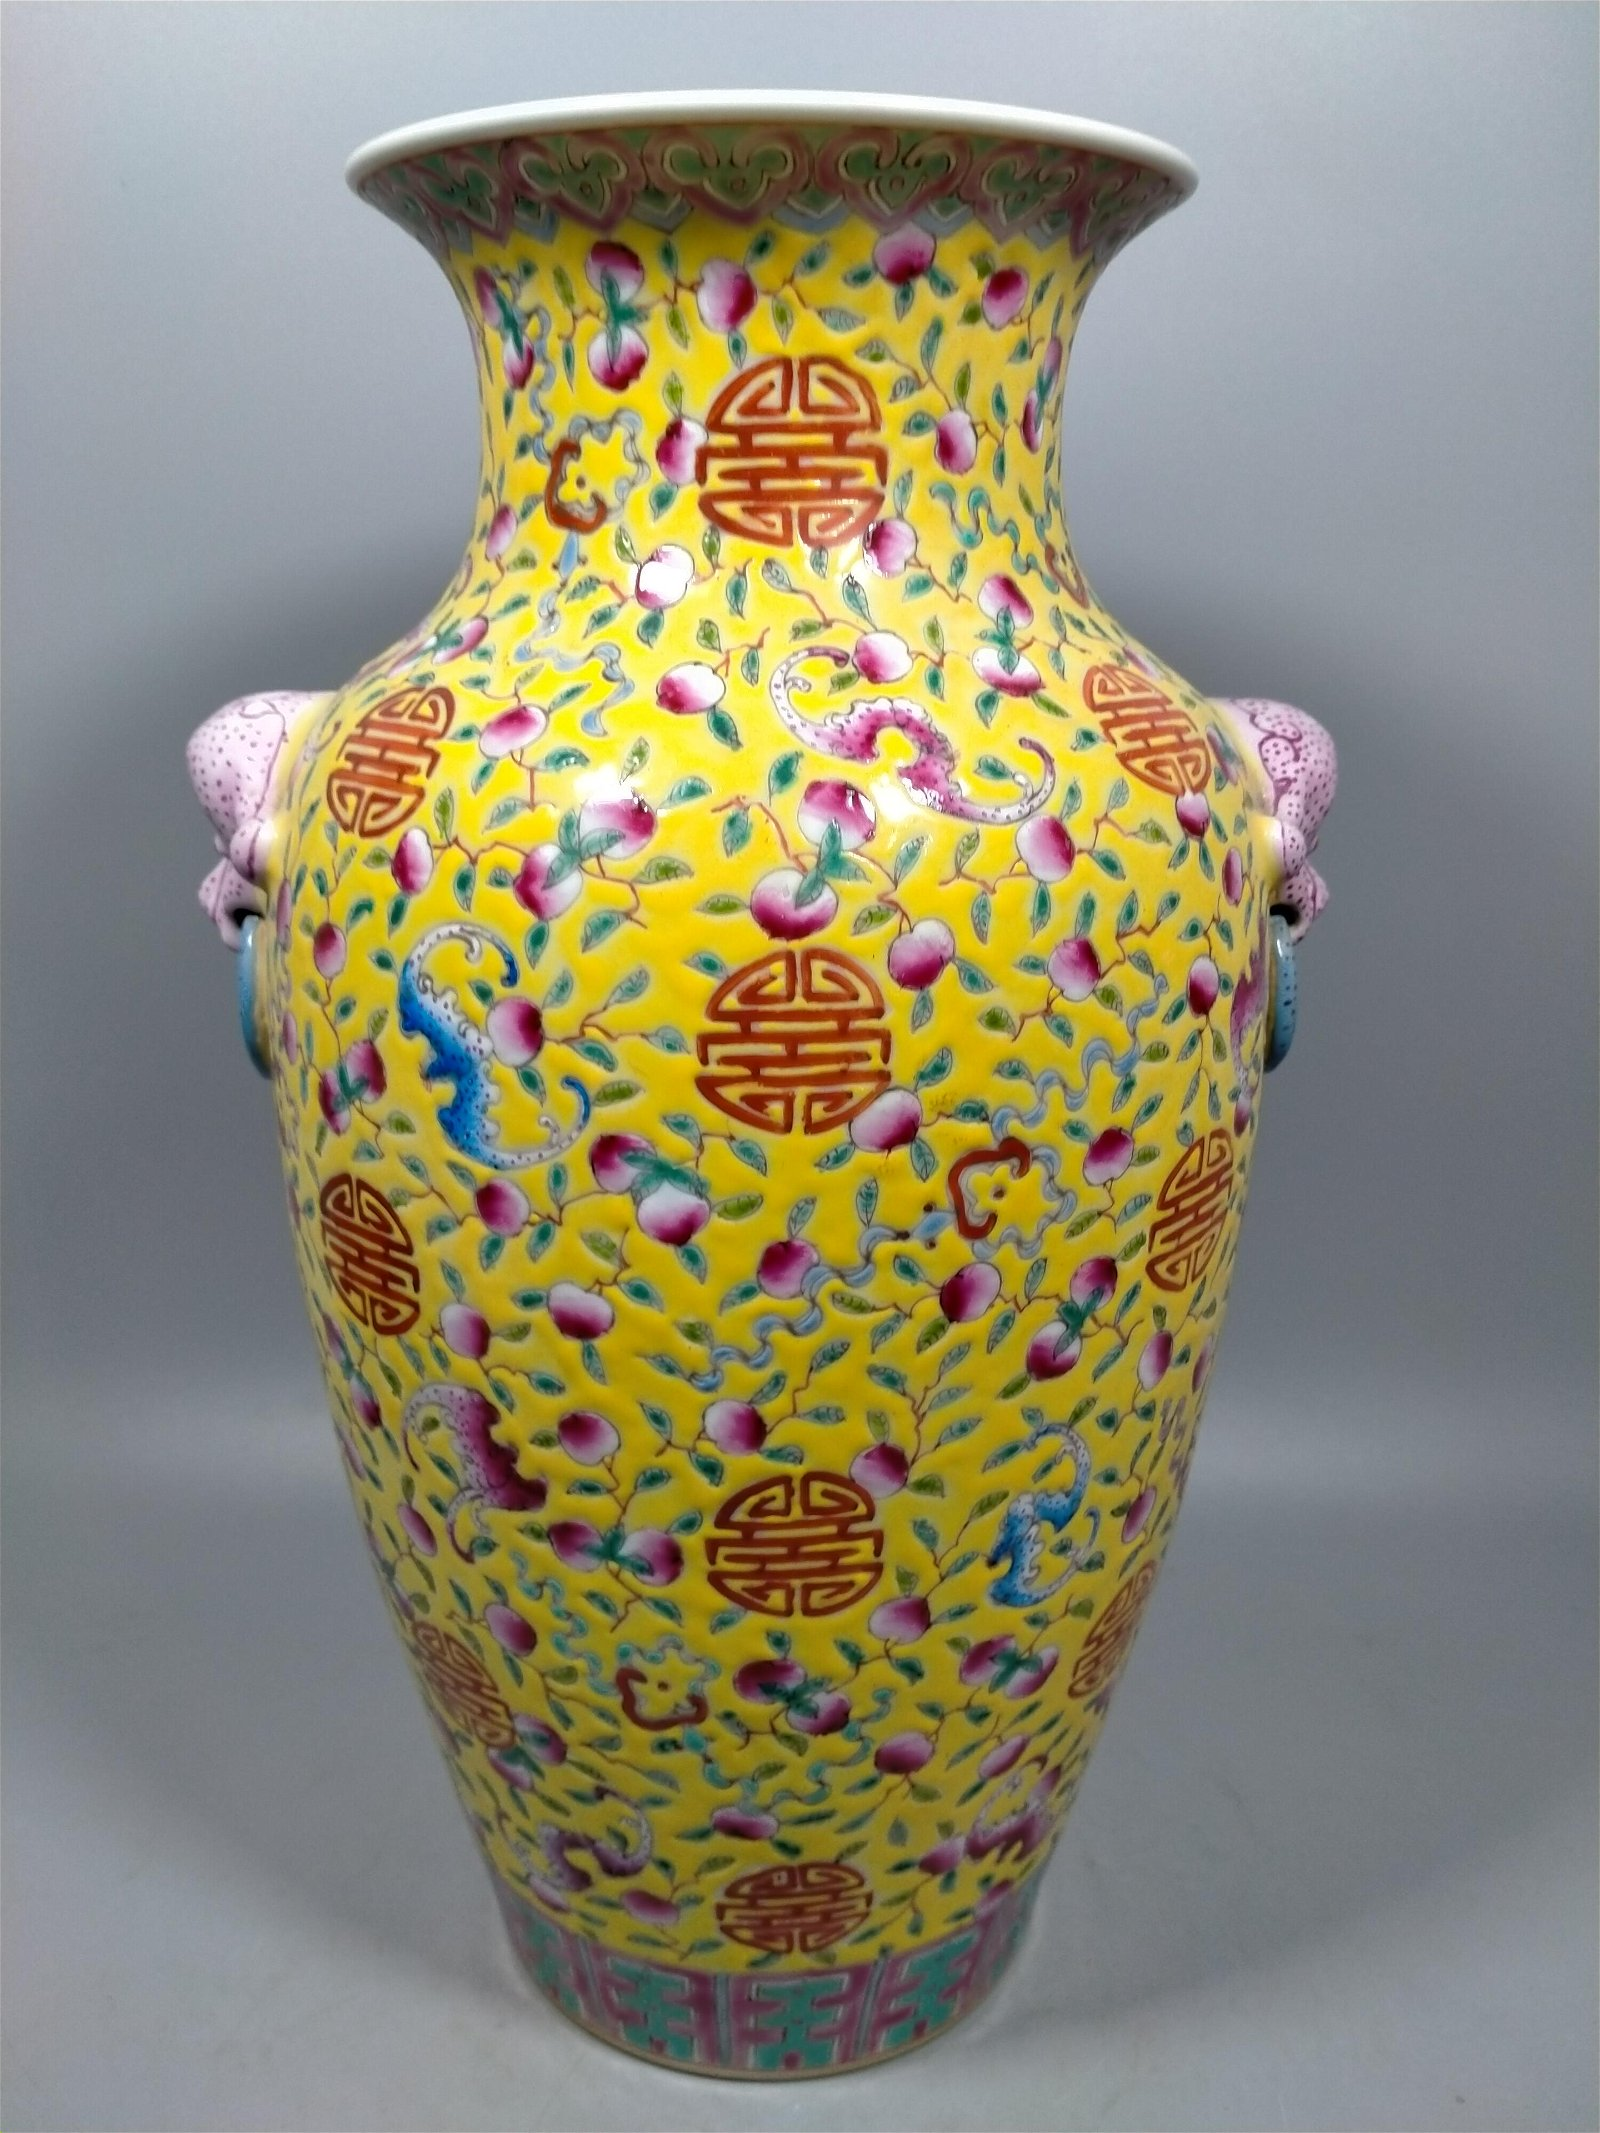 Famille rose painted vase with yellow glaze